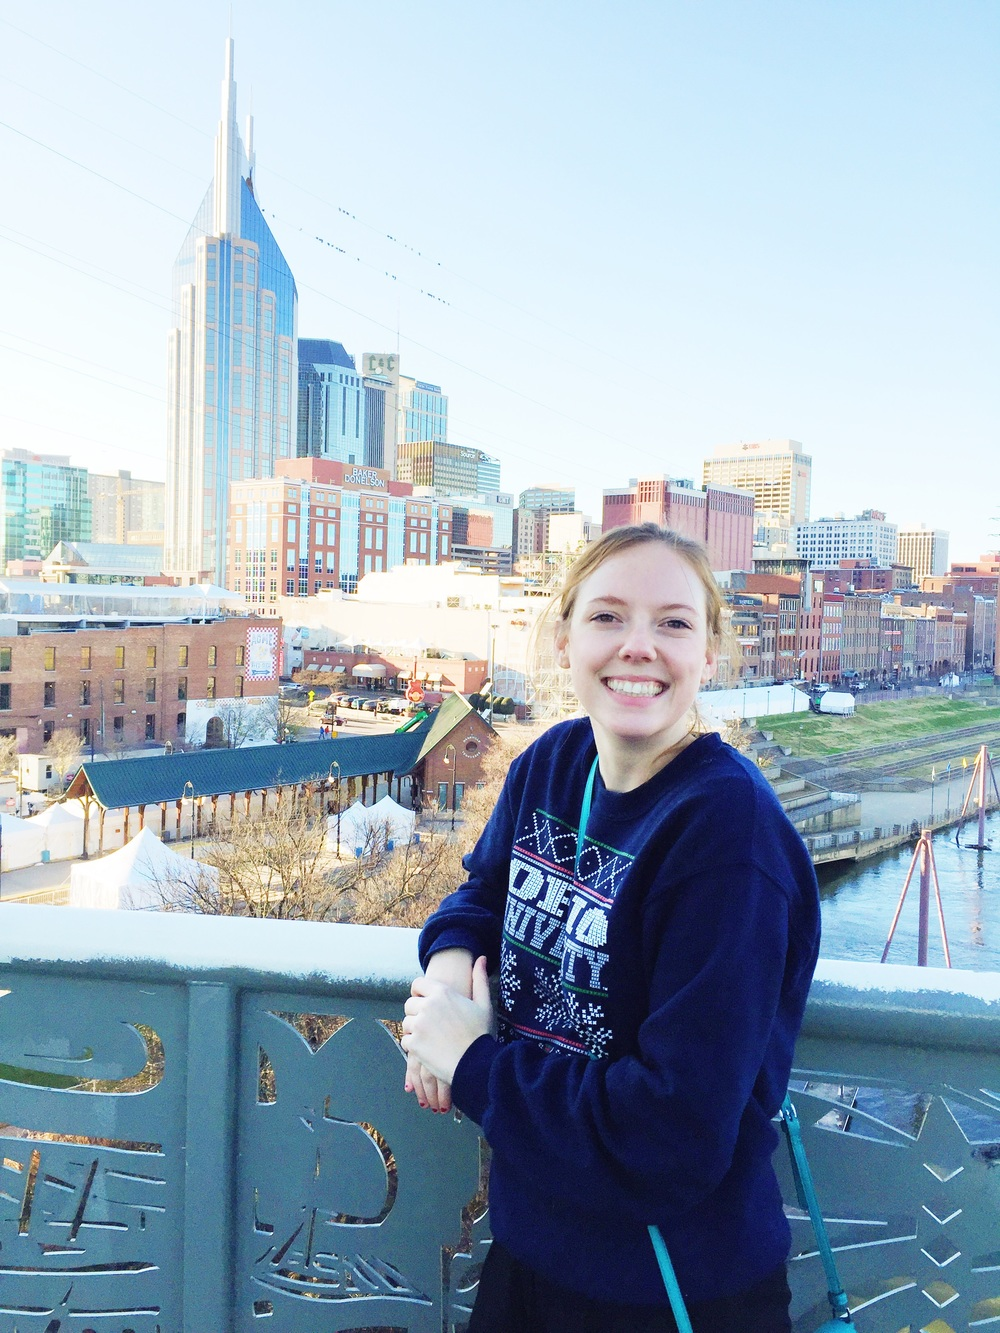 Amanda on the Pedestrian Bridge with a view of downtown.